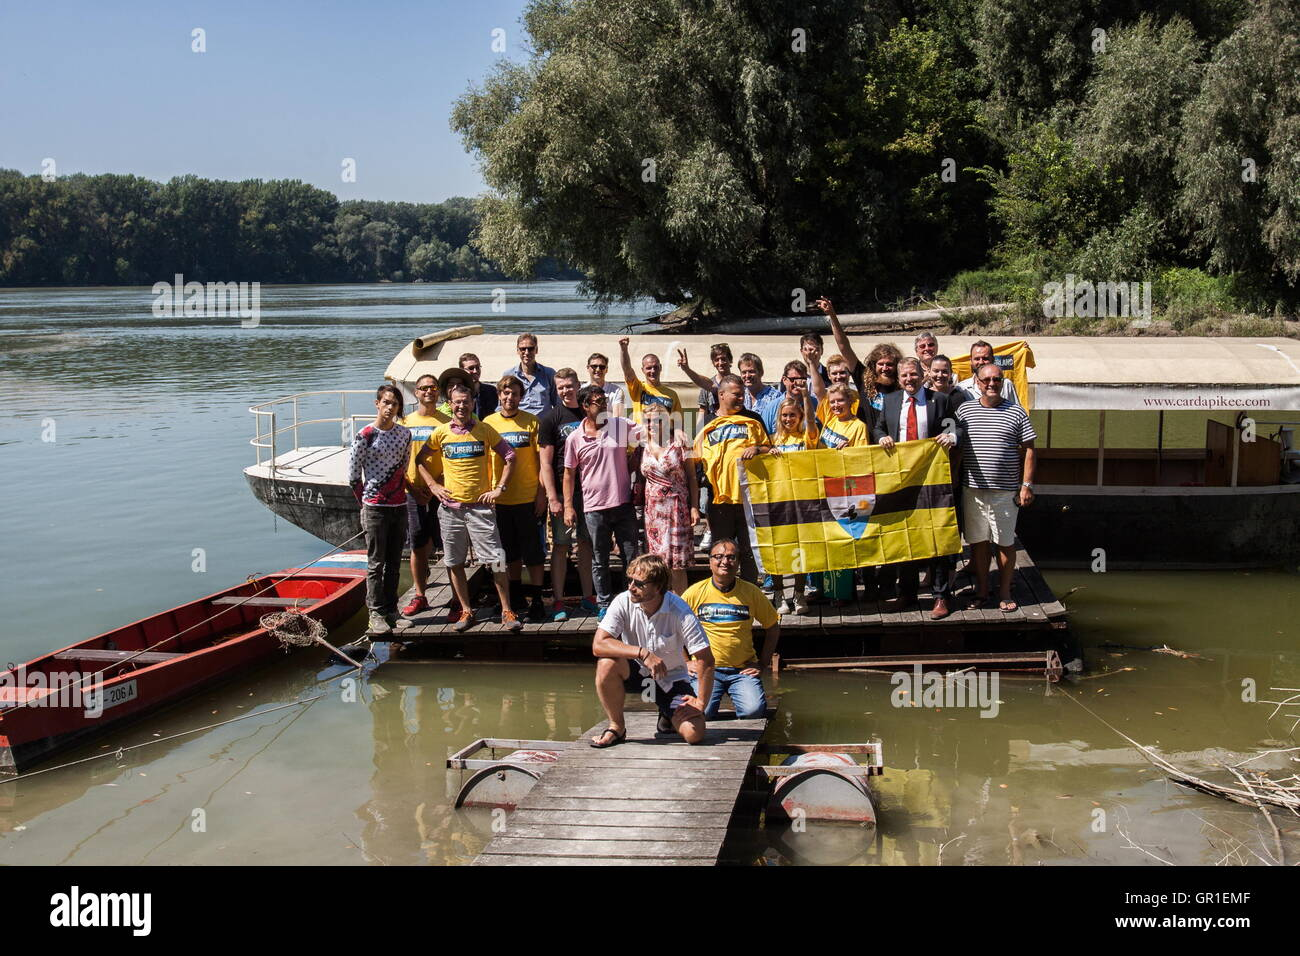 Aug 29, 2016 - Liberland - Liberland team on the way to Liberland. The Free Republic of Liberland, is a self-proclaimed - Stock Image